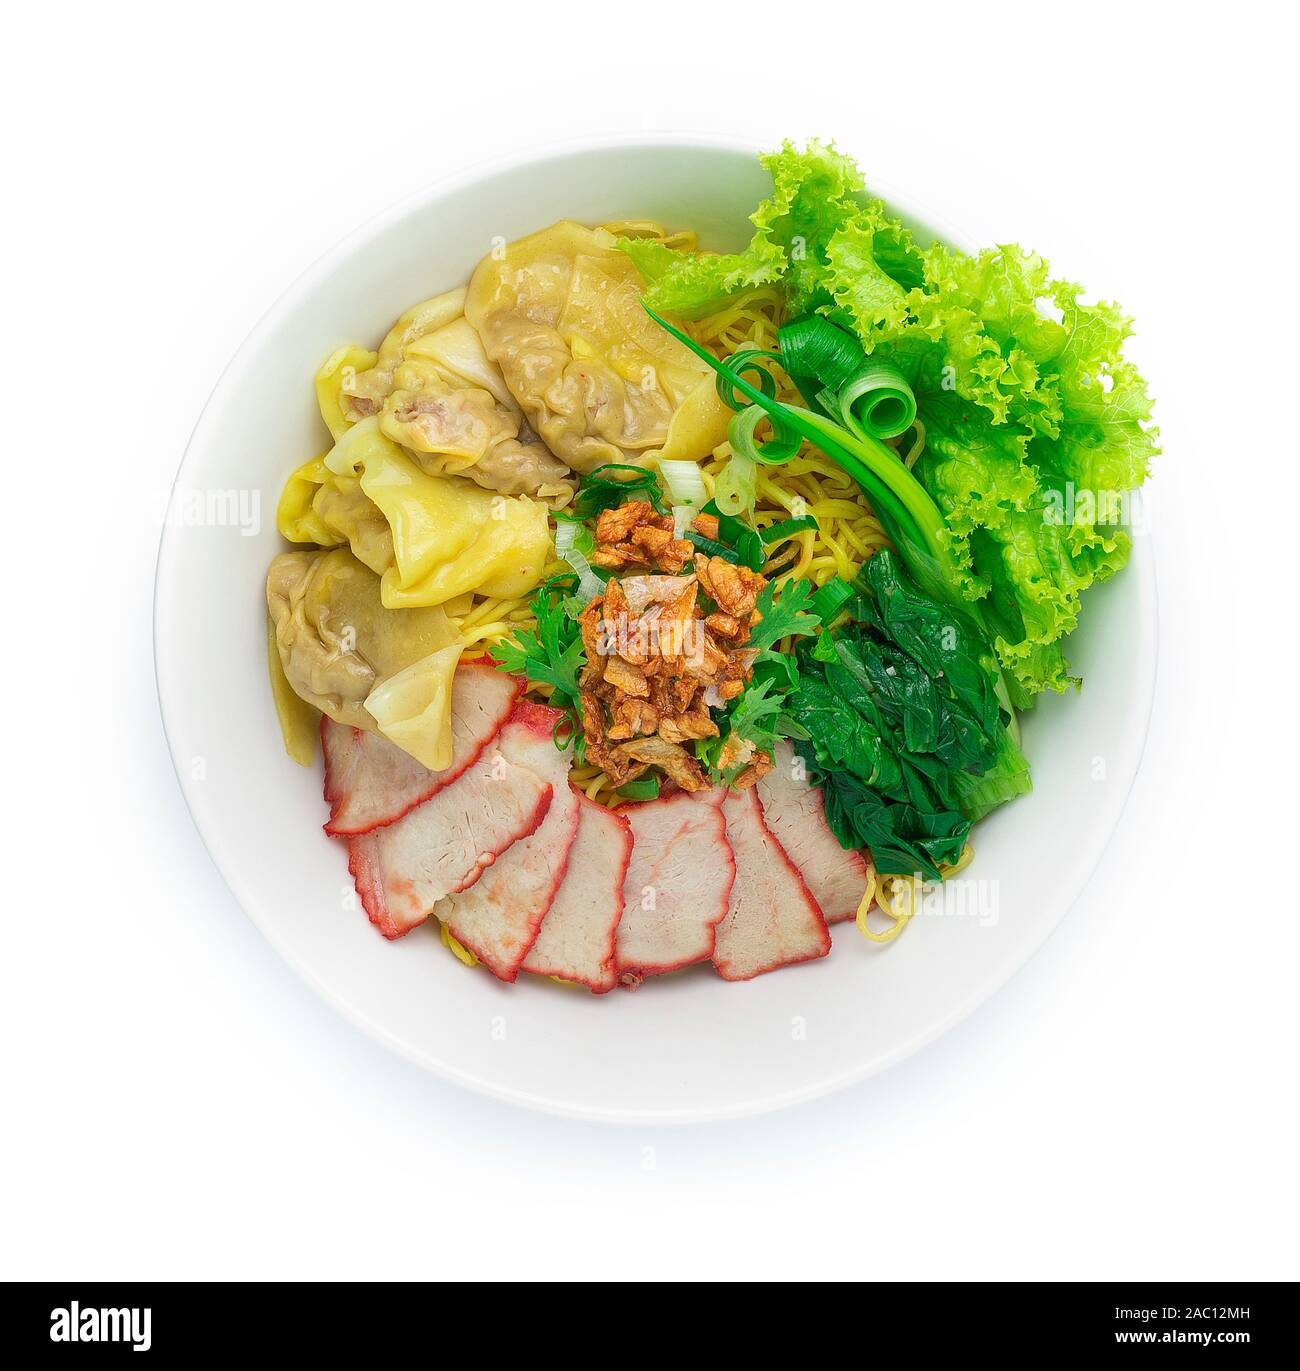 Egg Noodles with Red roast Pork and Wonton Dumplings ontop Crispy Garlic and Spring Onions in Bowl. Asian Food fusion style top view Stock Photo